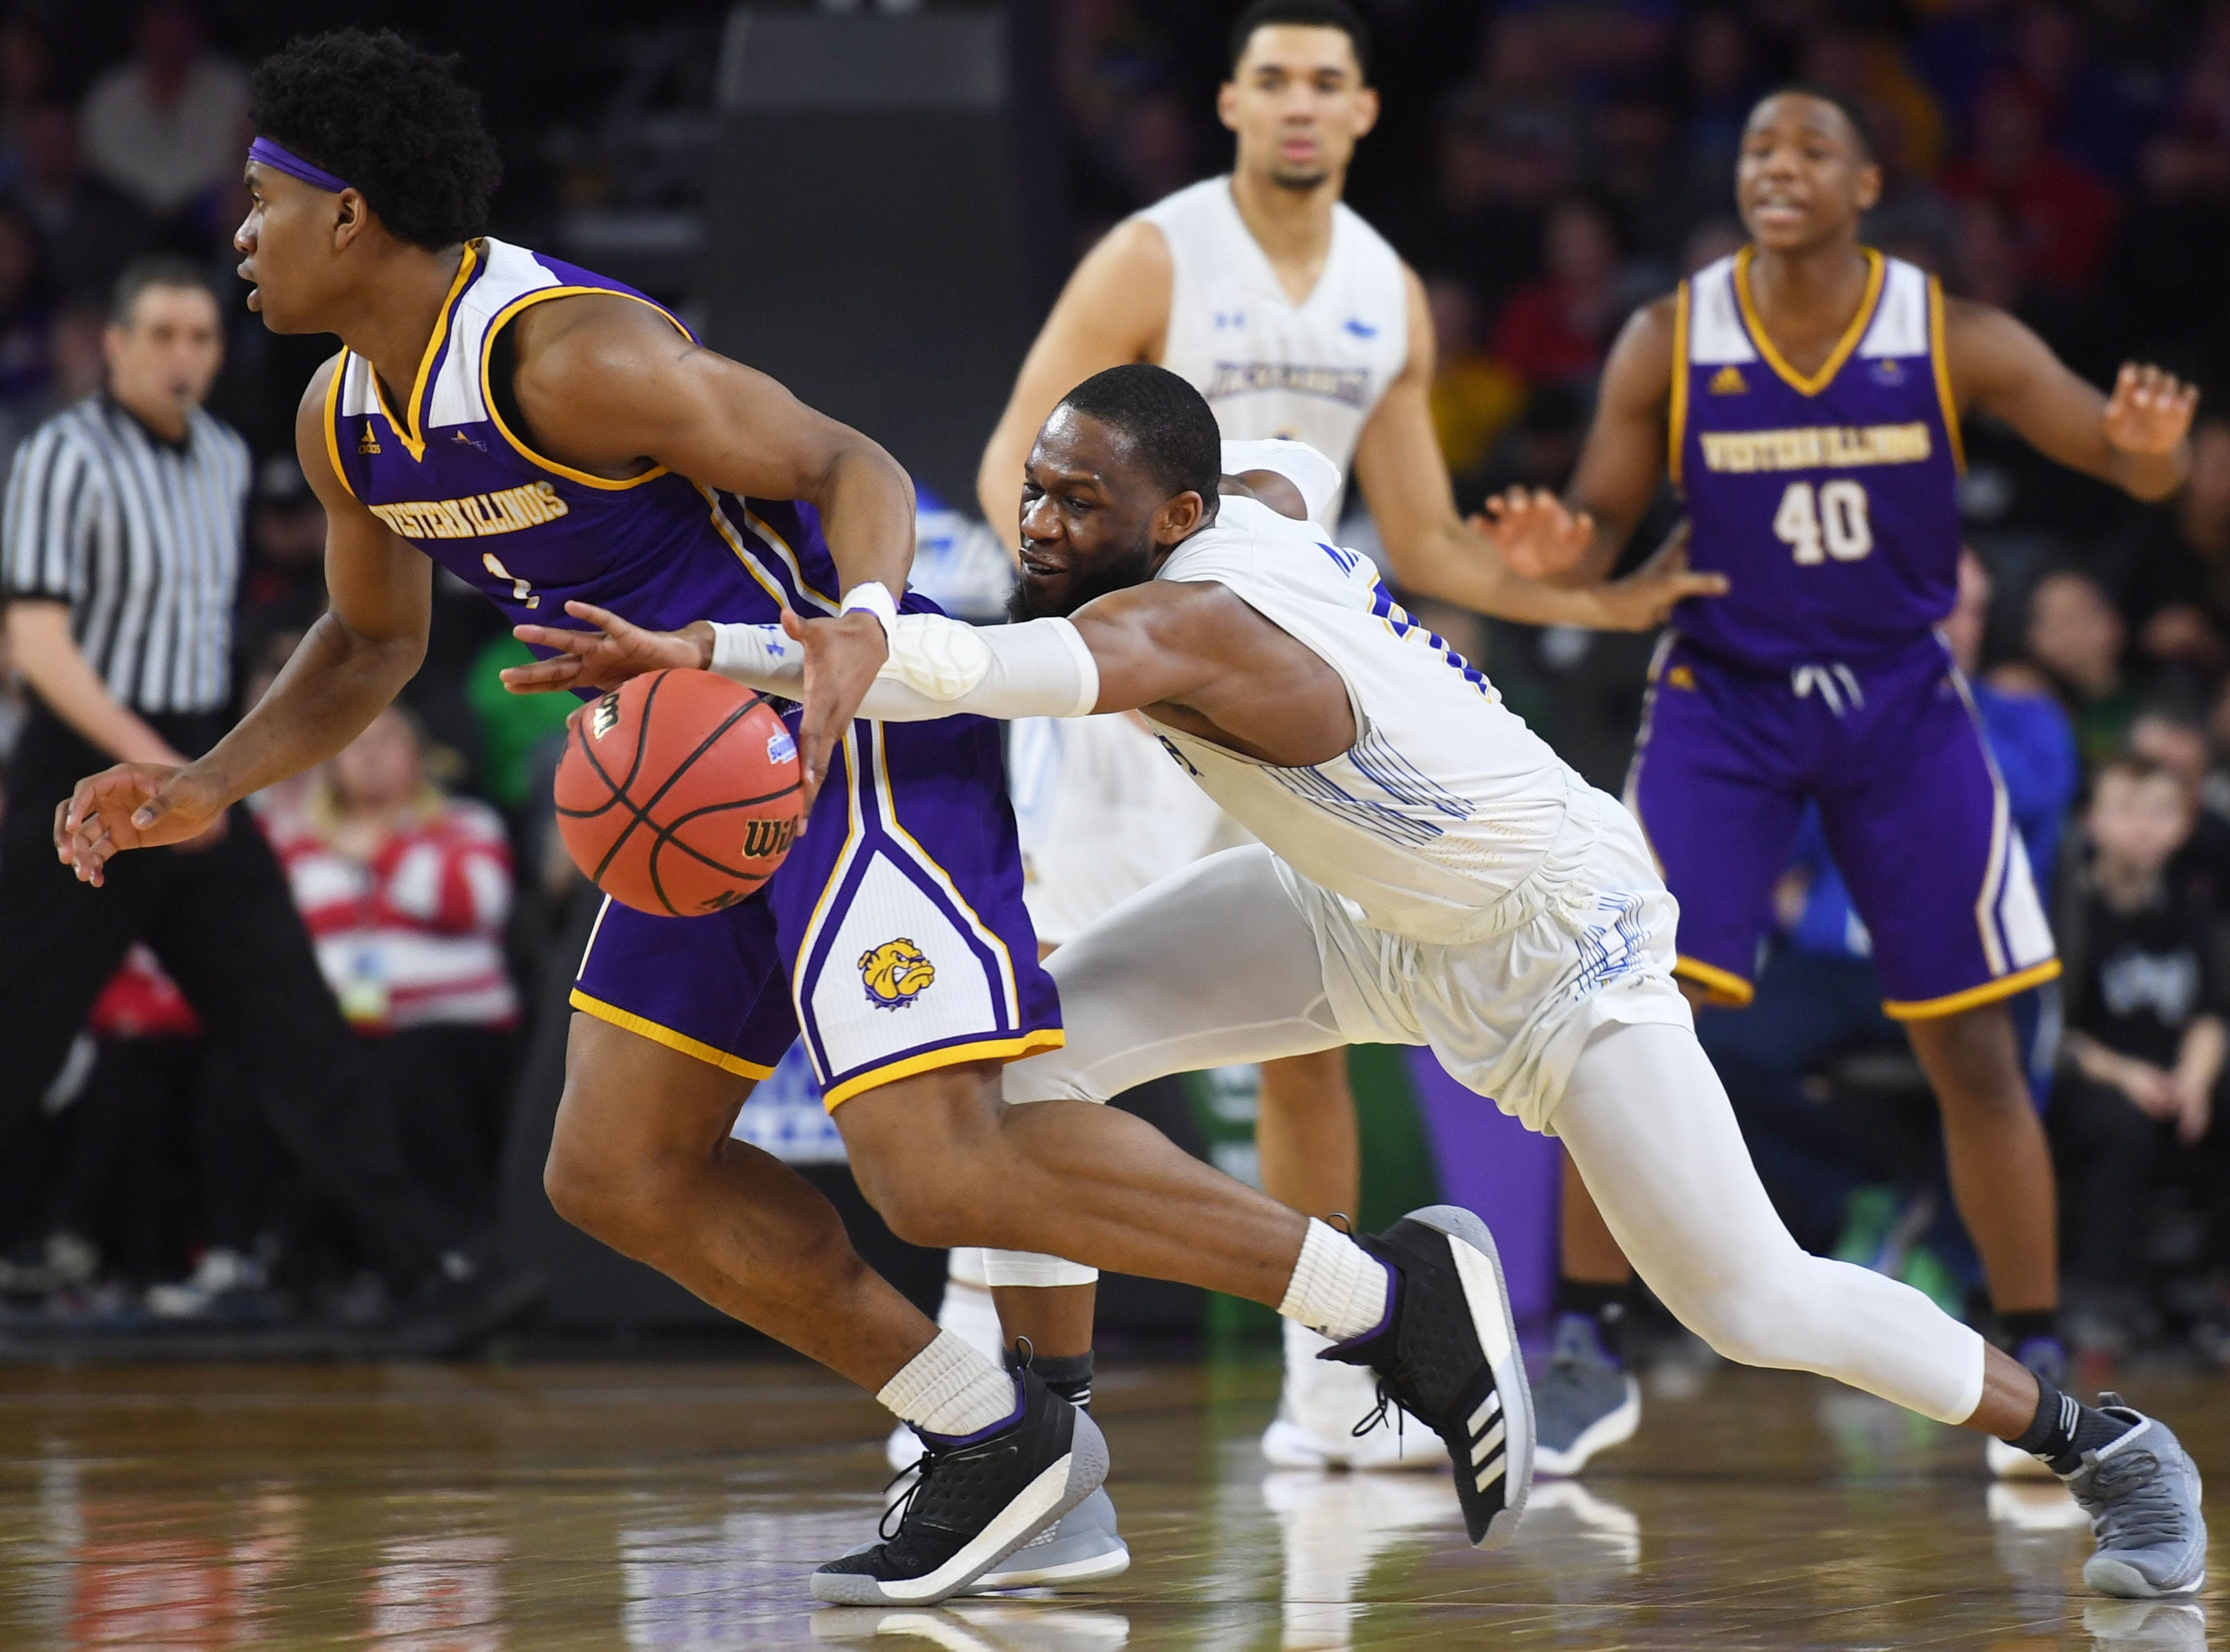 SDSU's Tevin King attempts to gain control of the ball during the game against Western Illinois Saturday, March 9, in the Summit League tournament at the Denny Sanford Premier Center in Sioux Falls.